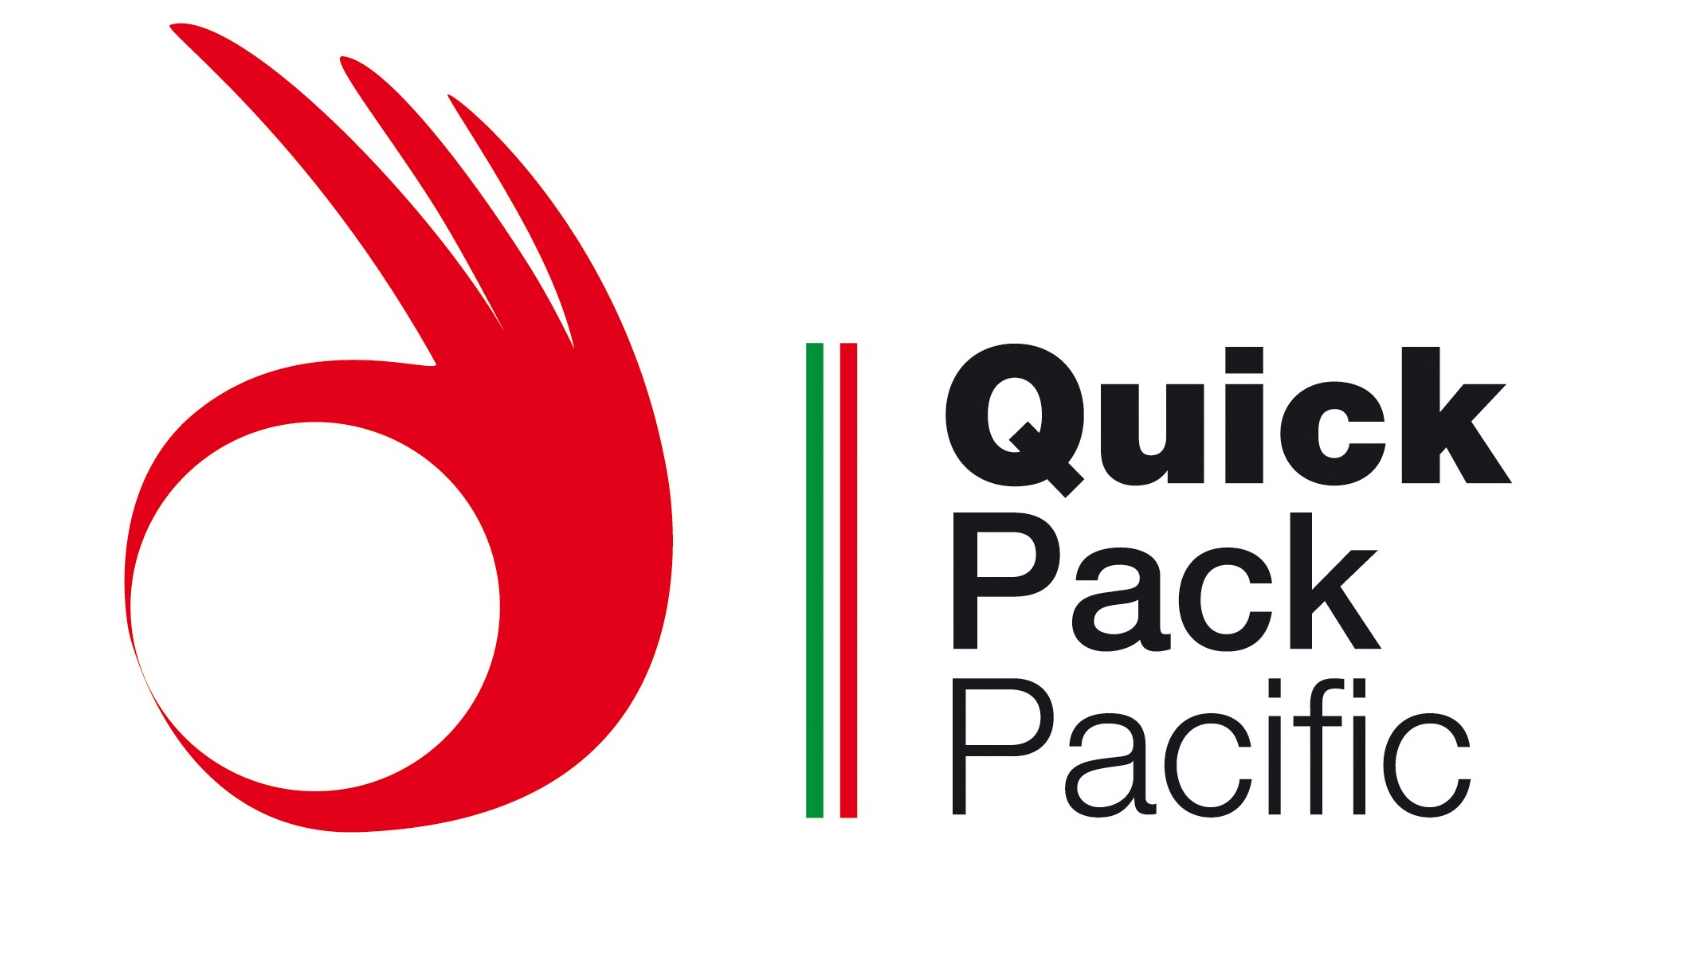 Quick Pack Pacific